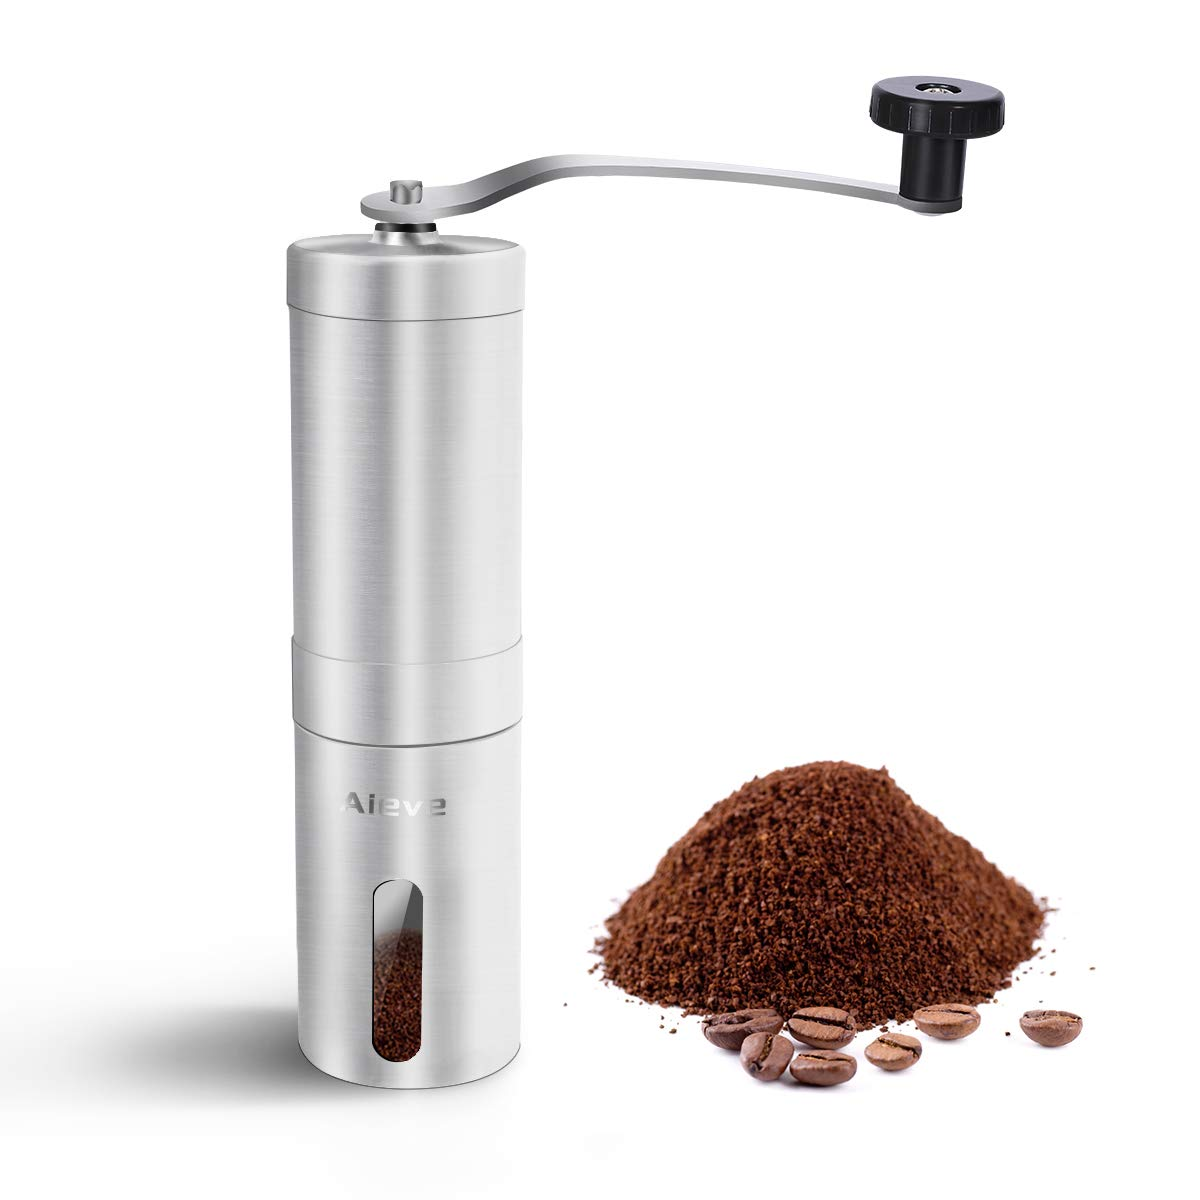 Manual Coffee Grinder,Stainless Steel Coffee Grinder Manual Grinder Conical Burr Grinder for Grinding Coffee Beans Spices Herb